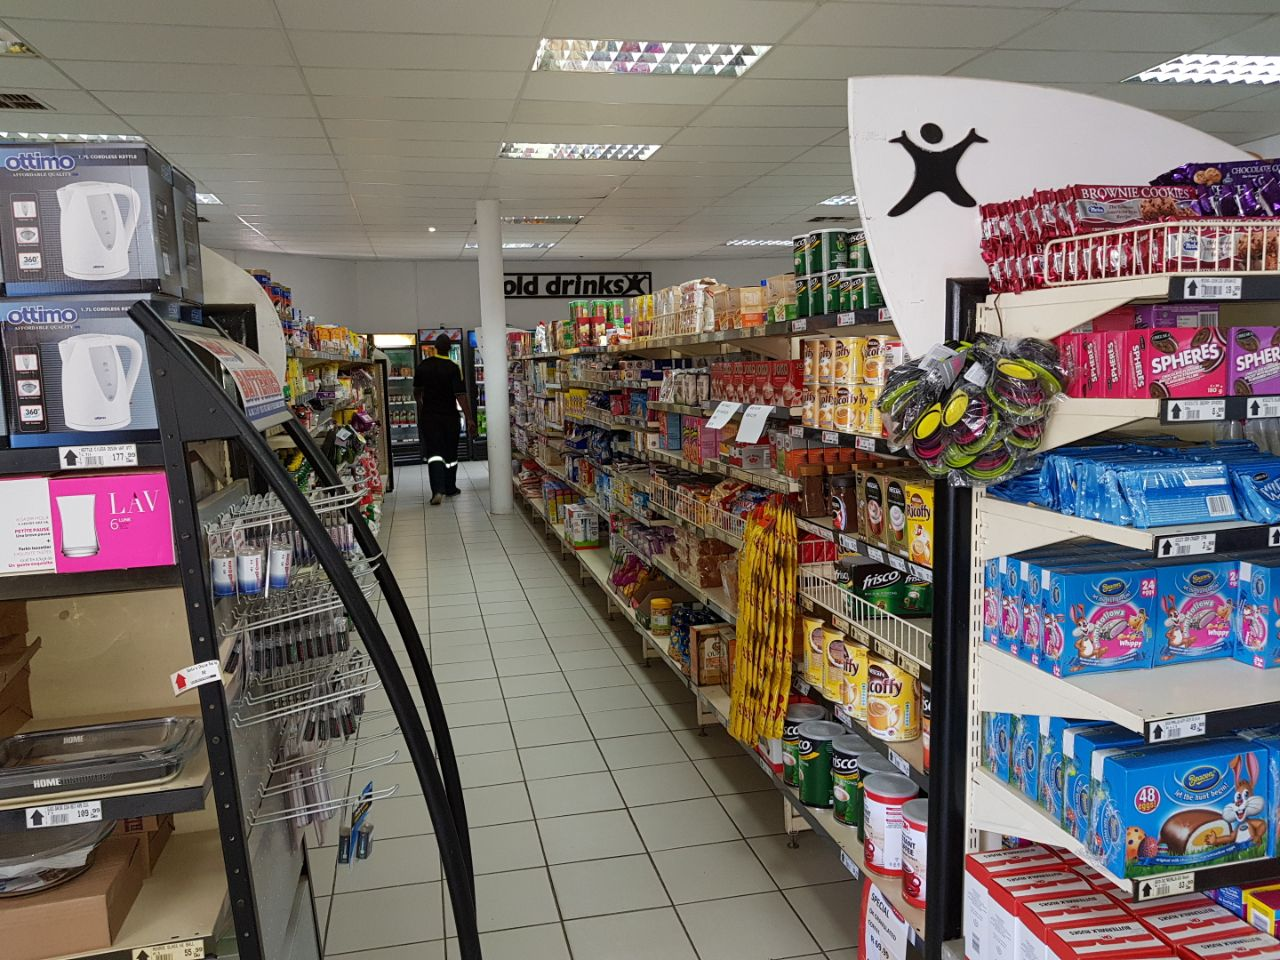 Friendly Supermarket and Liq Store Wesselsbron